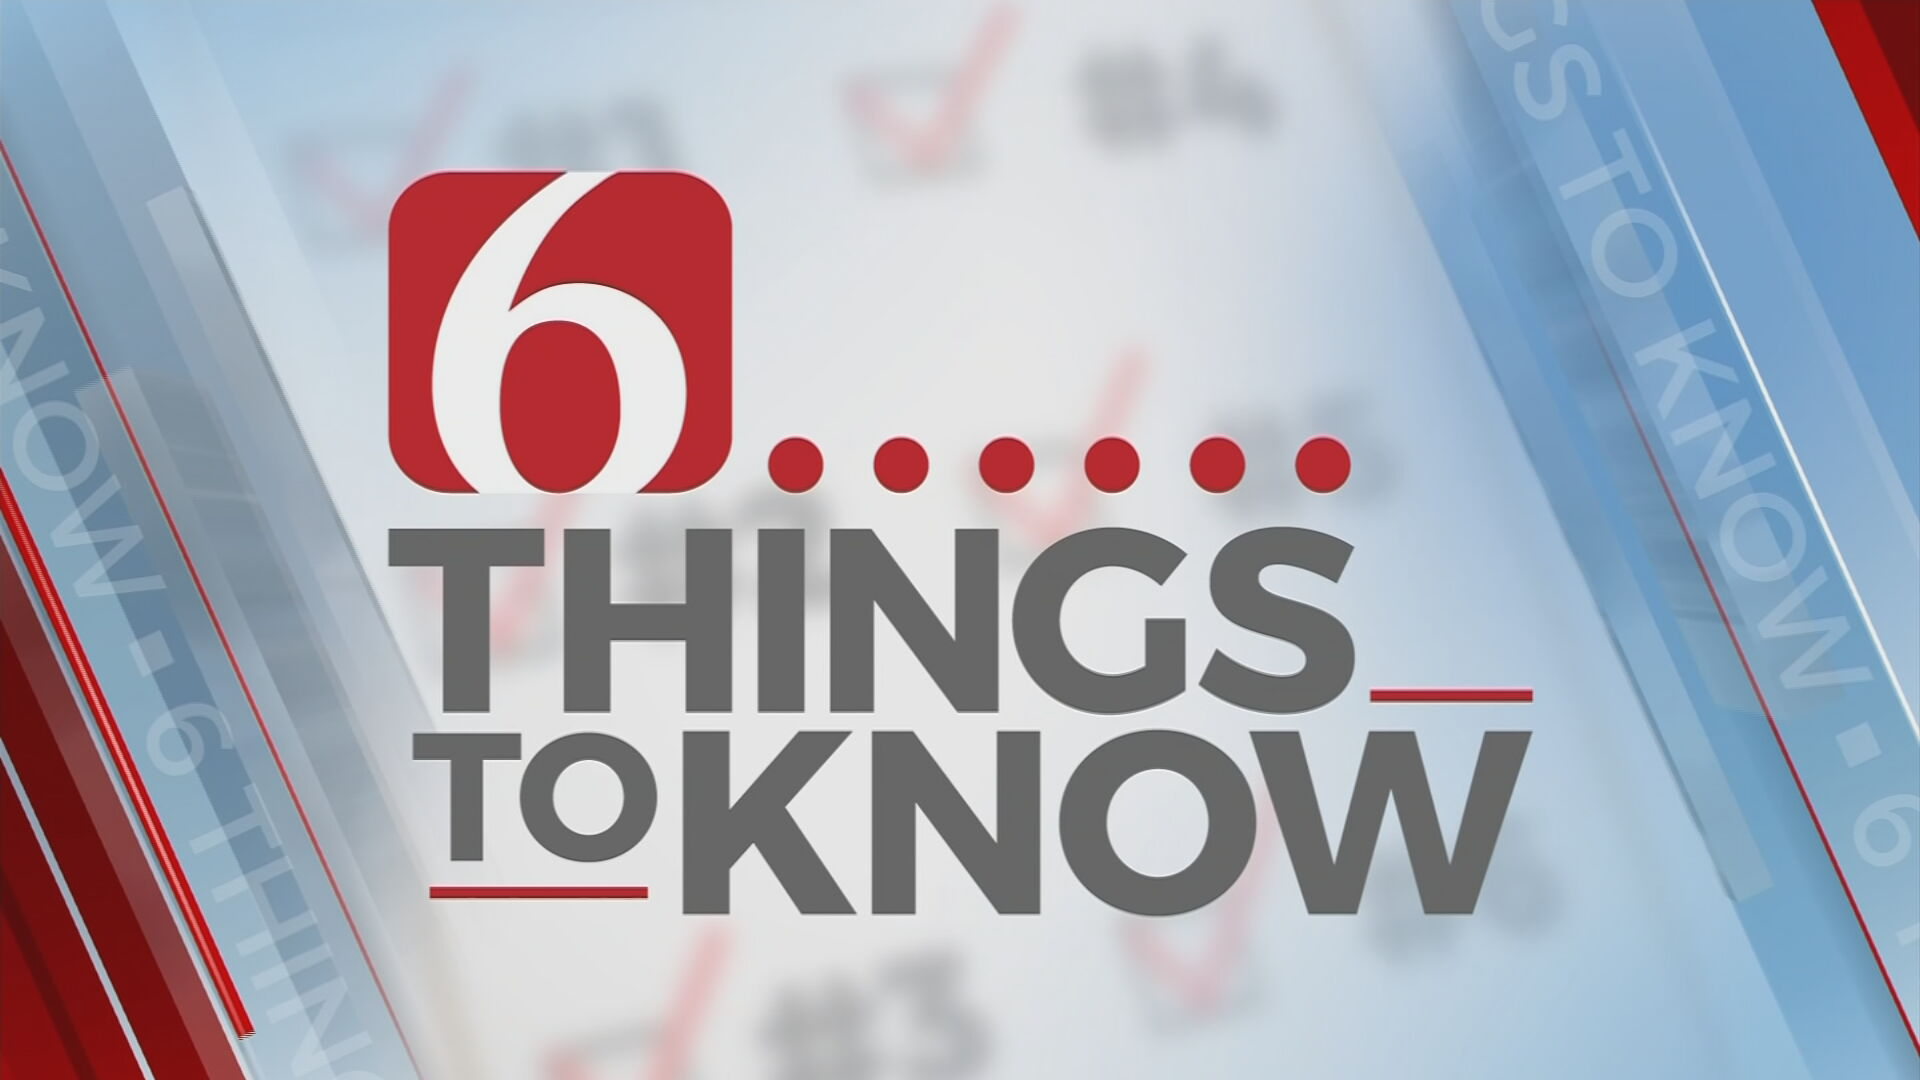 6 Things To Know (Jan 6): Washington, Tulsans Prepare For Election Certification